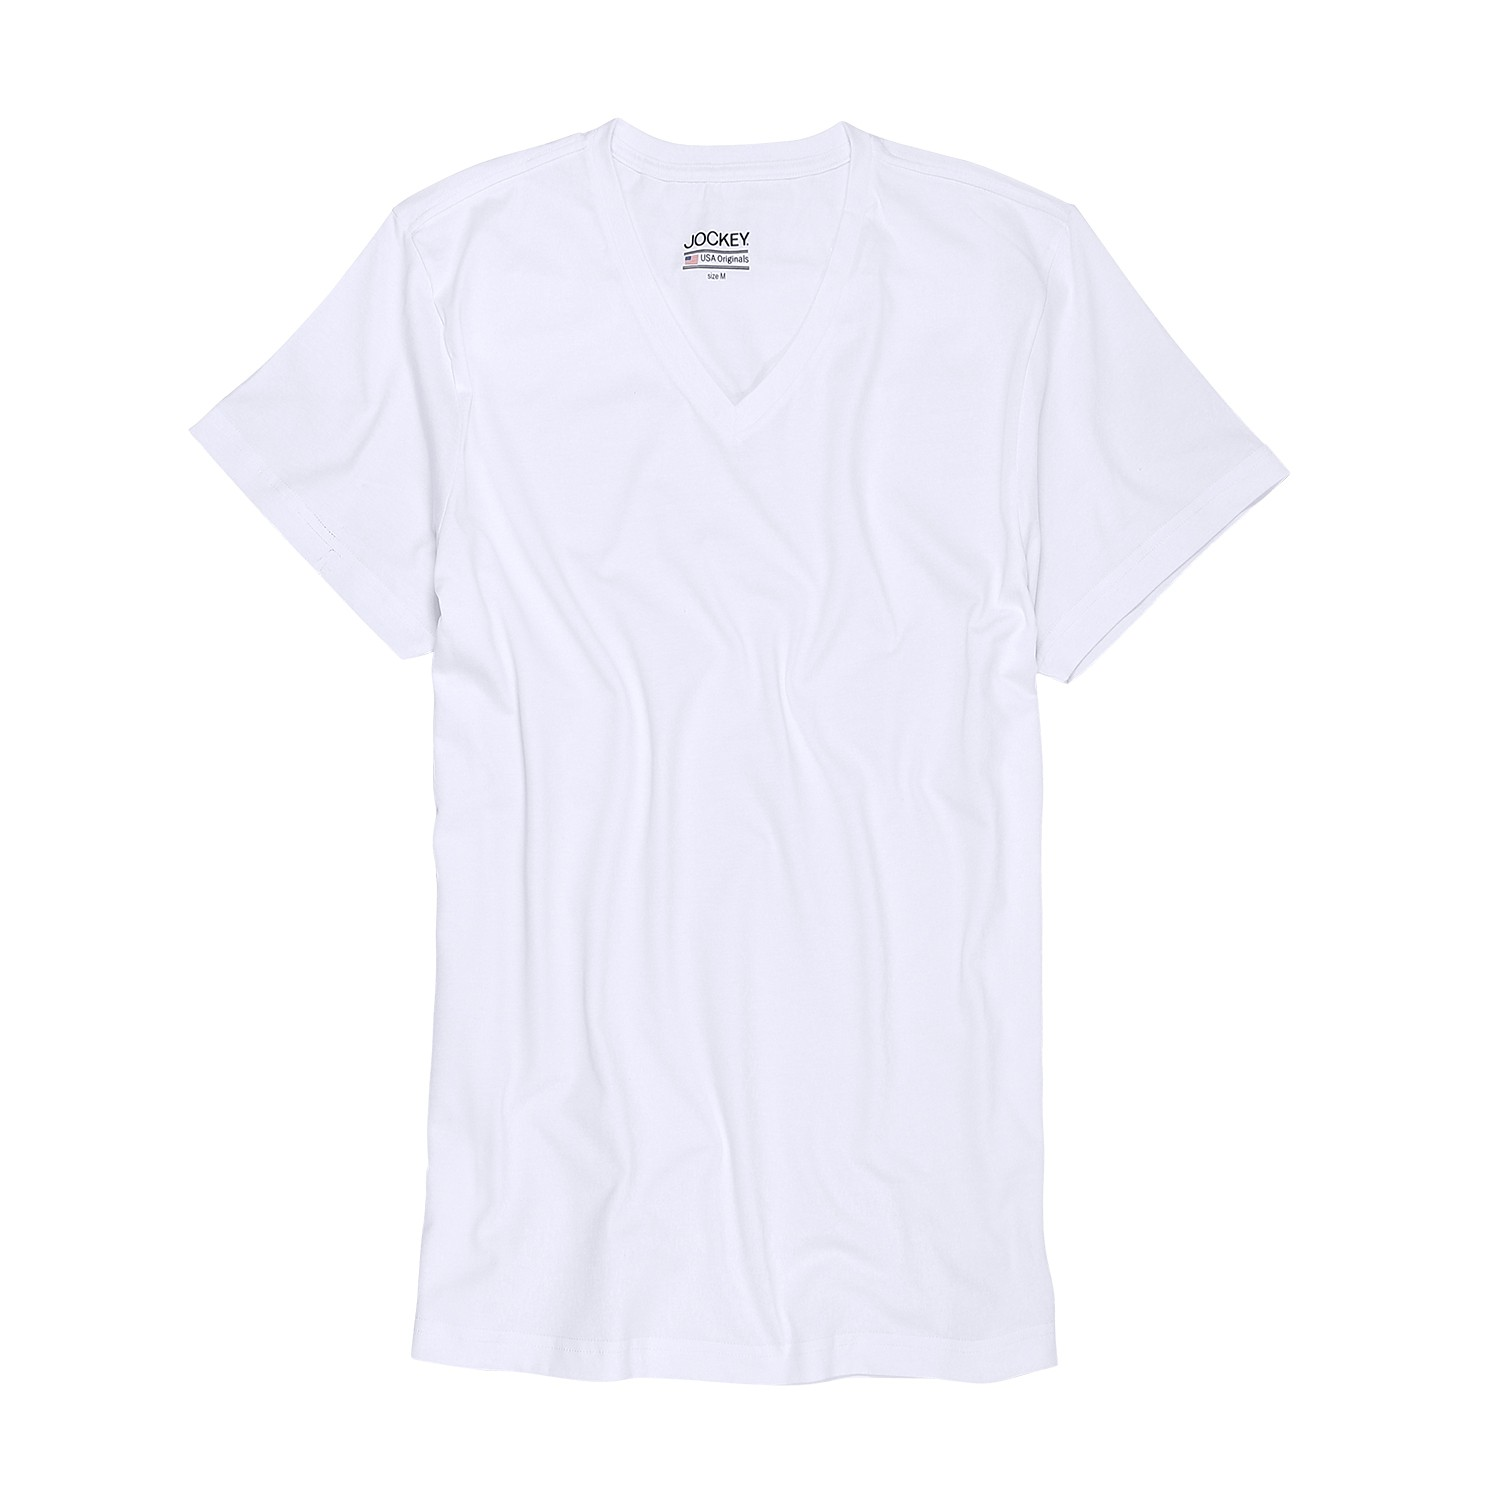 Detail Image to White T-shirt with v-neck from Jockey in oversize until 6XL